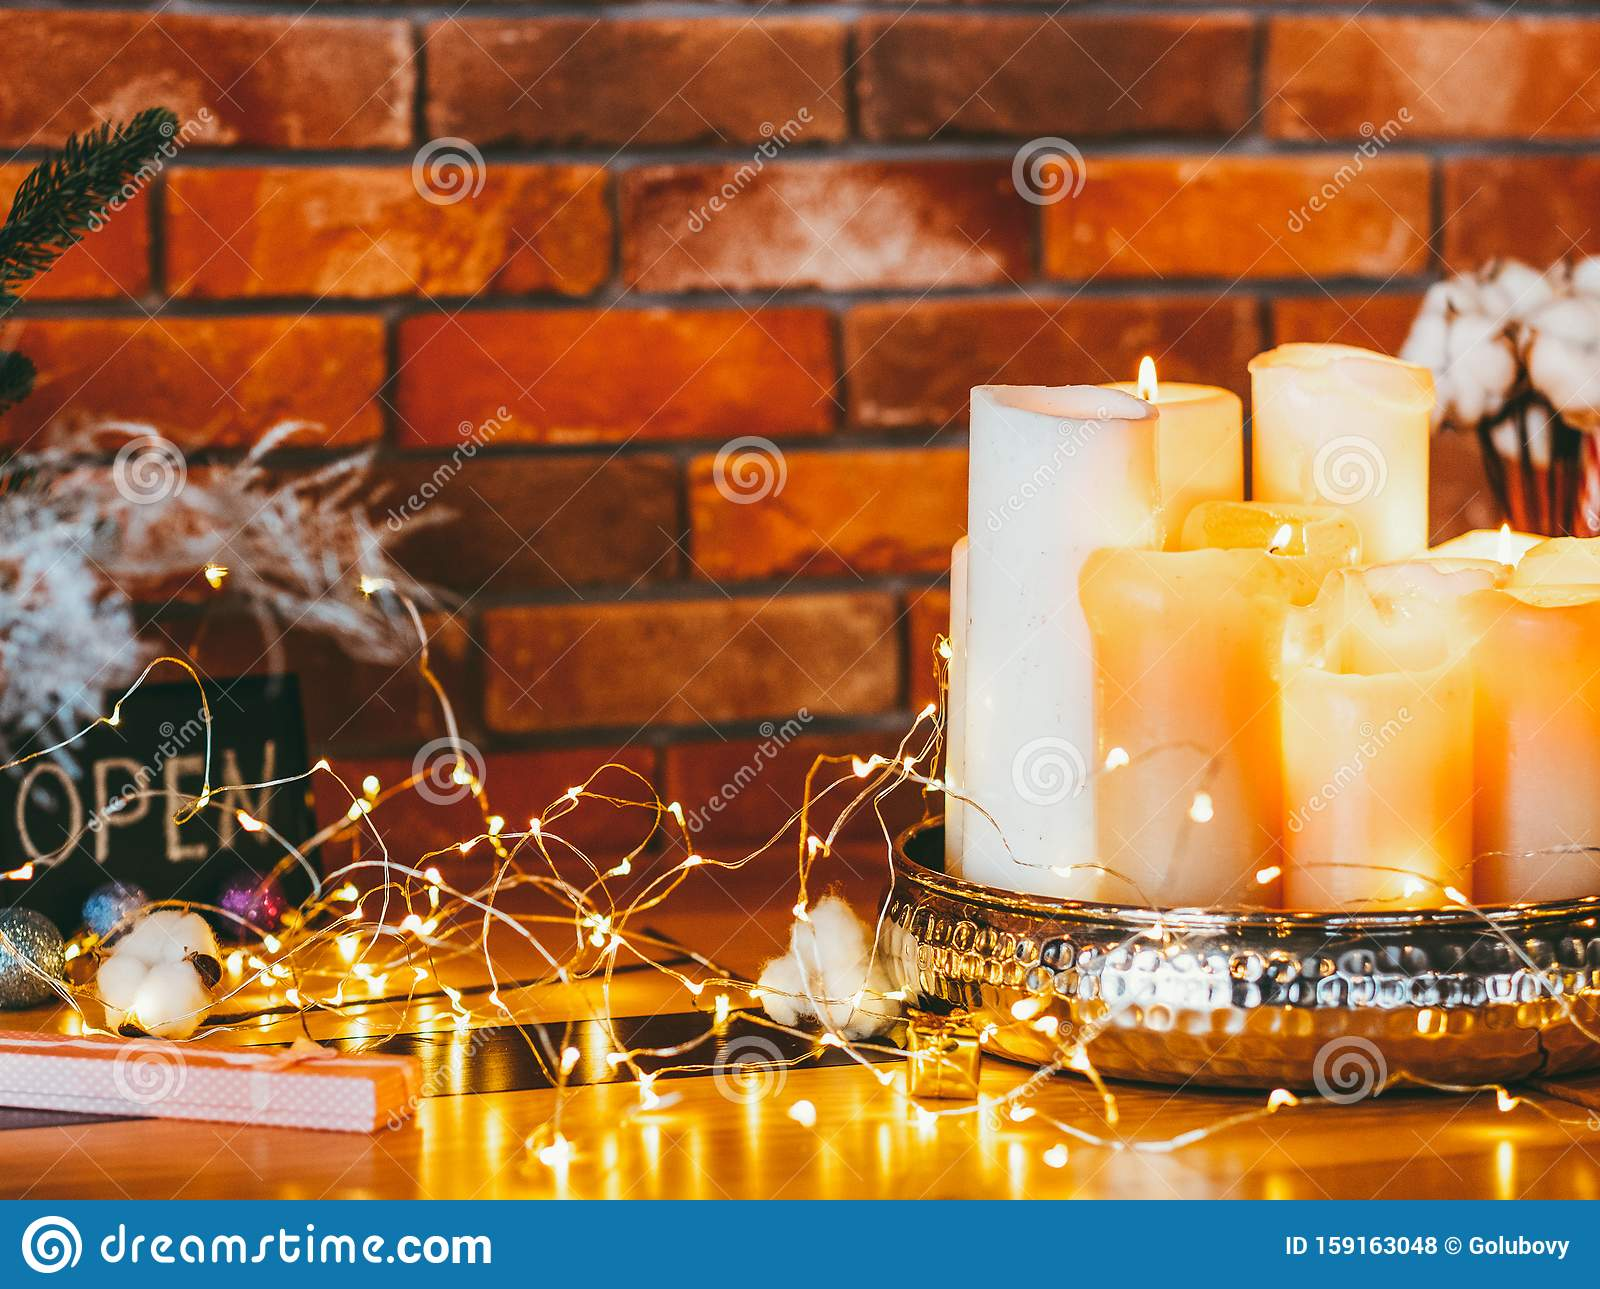 Modern Festive Interior Design Fairy Lights Stock Photo Image Of Showroom Surprise 159163048